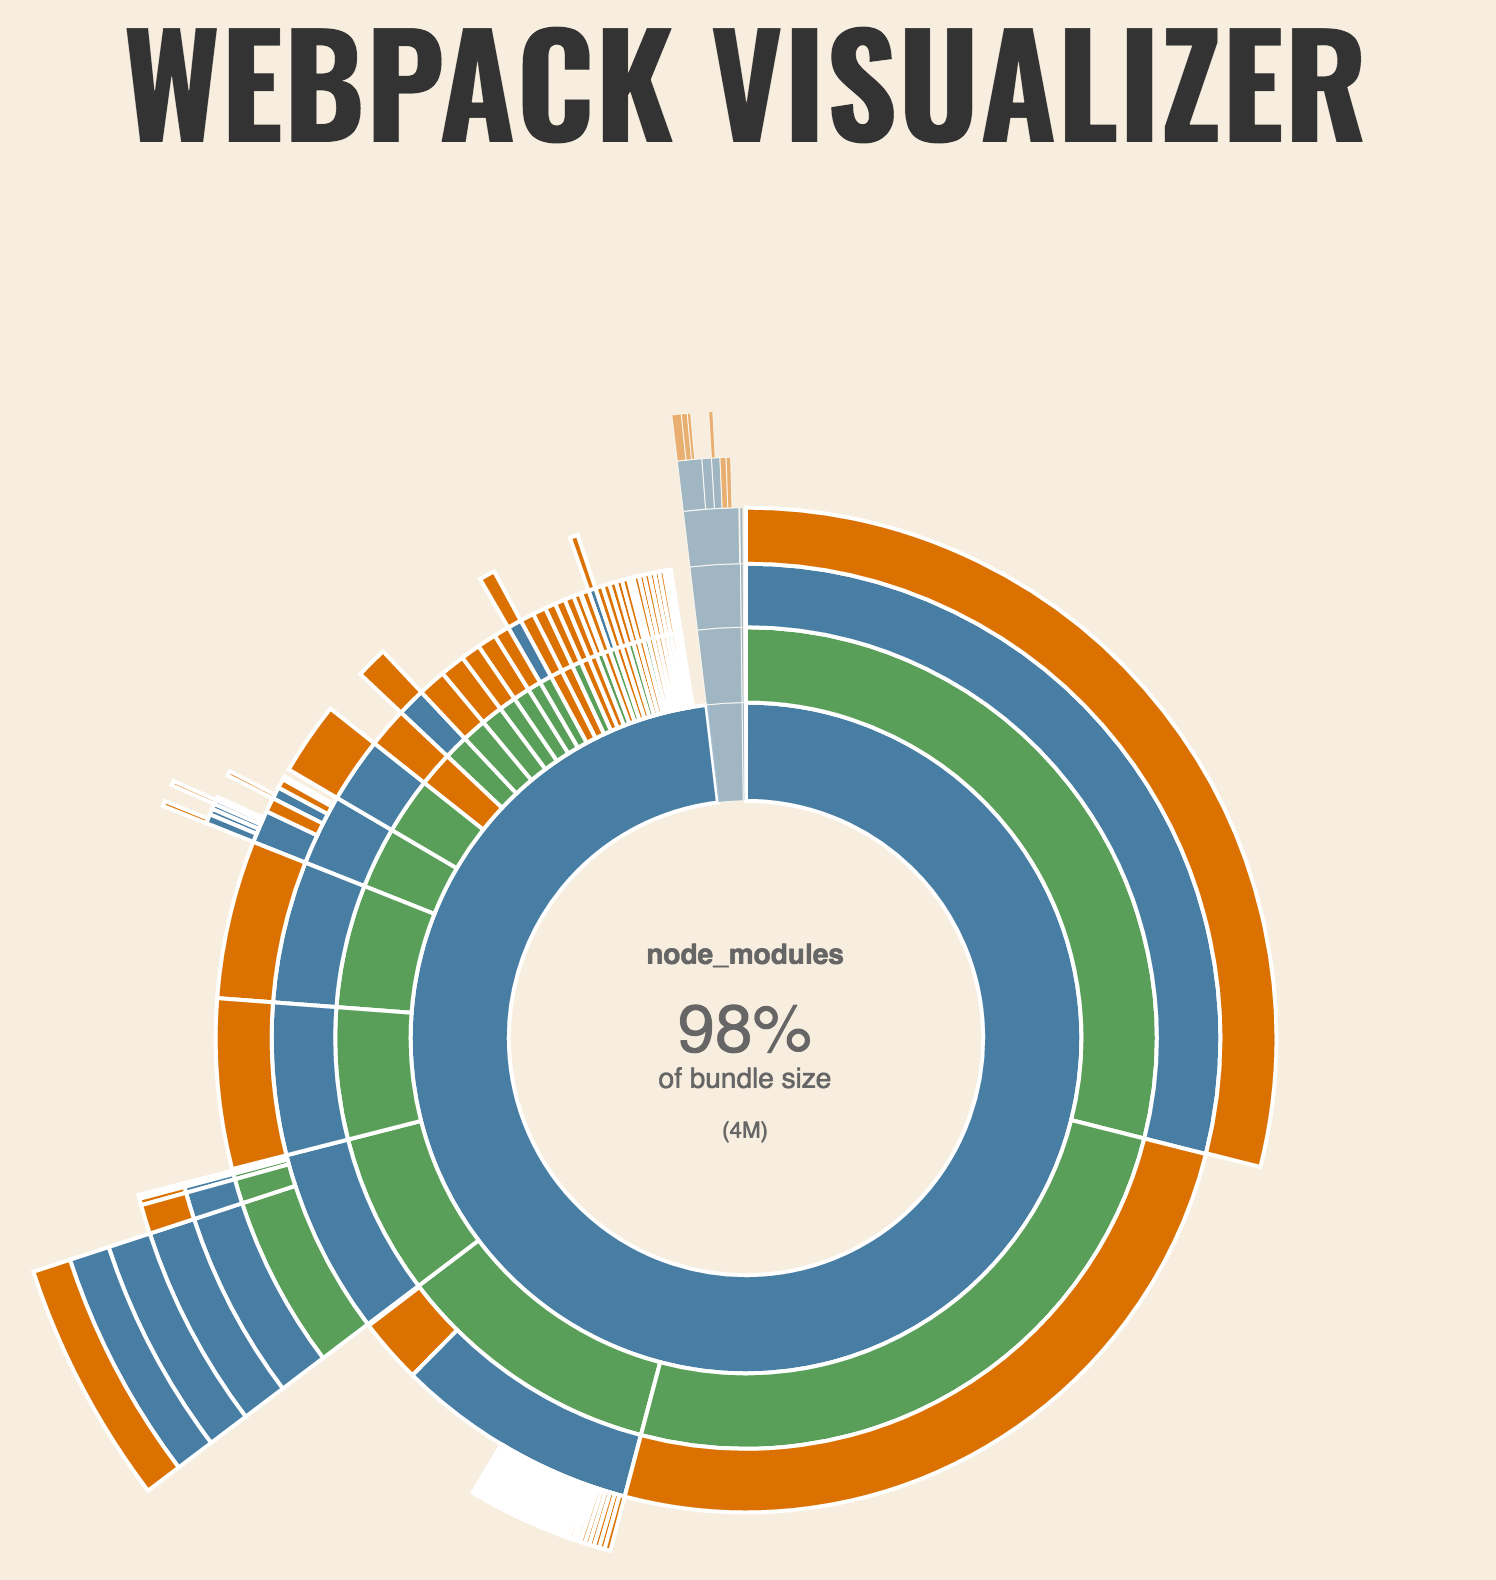 WEBPACK VISUALIZER